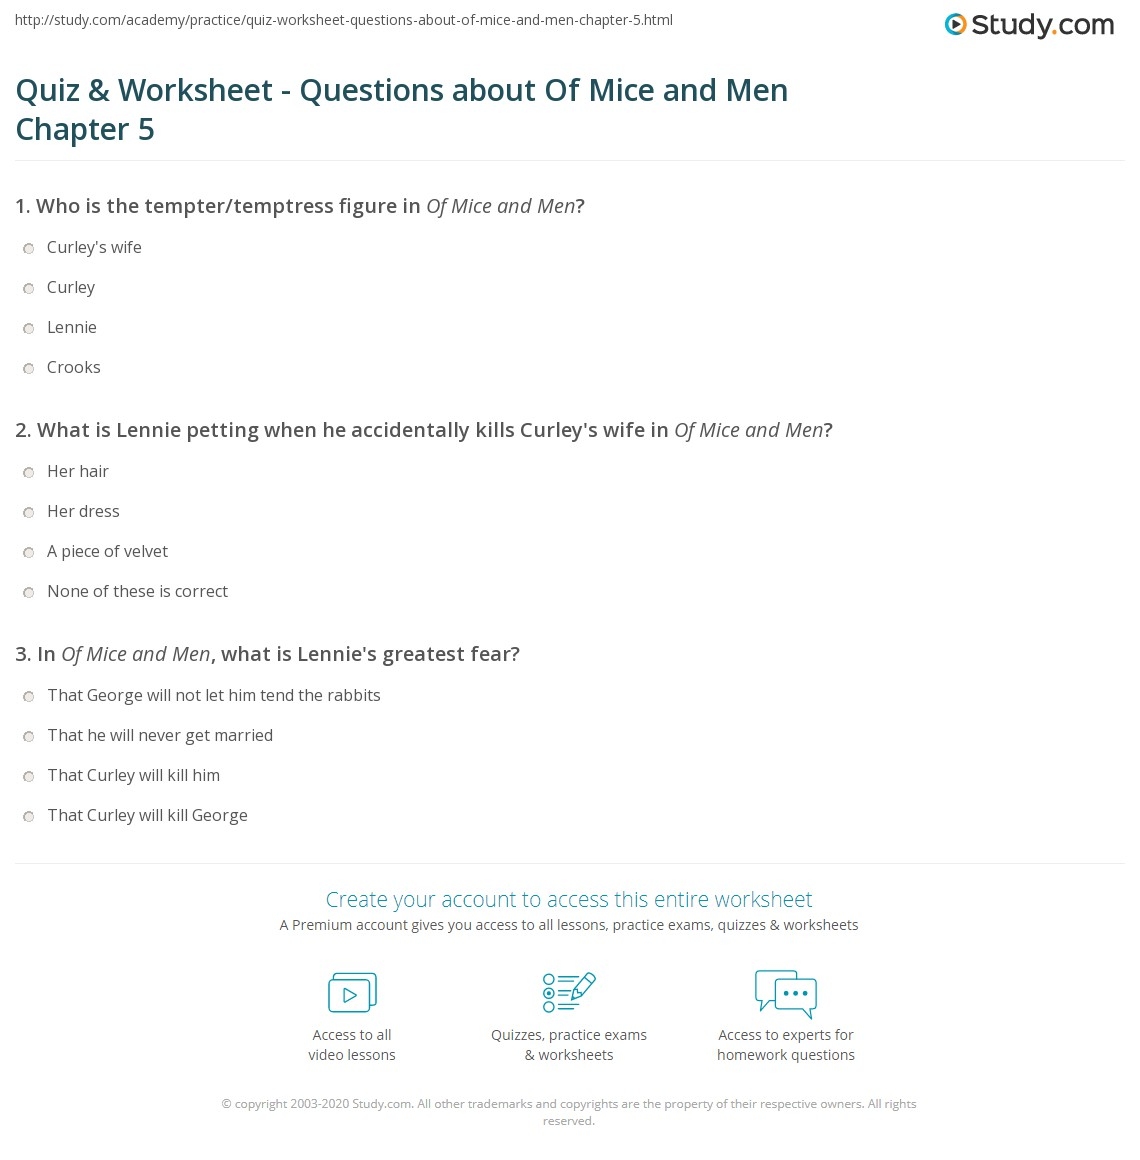 Worksheets Of Mice And Men Worksheets quiz worksheet questions about of mice and men chapter 5 print summary quotes worksheet